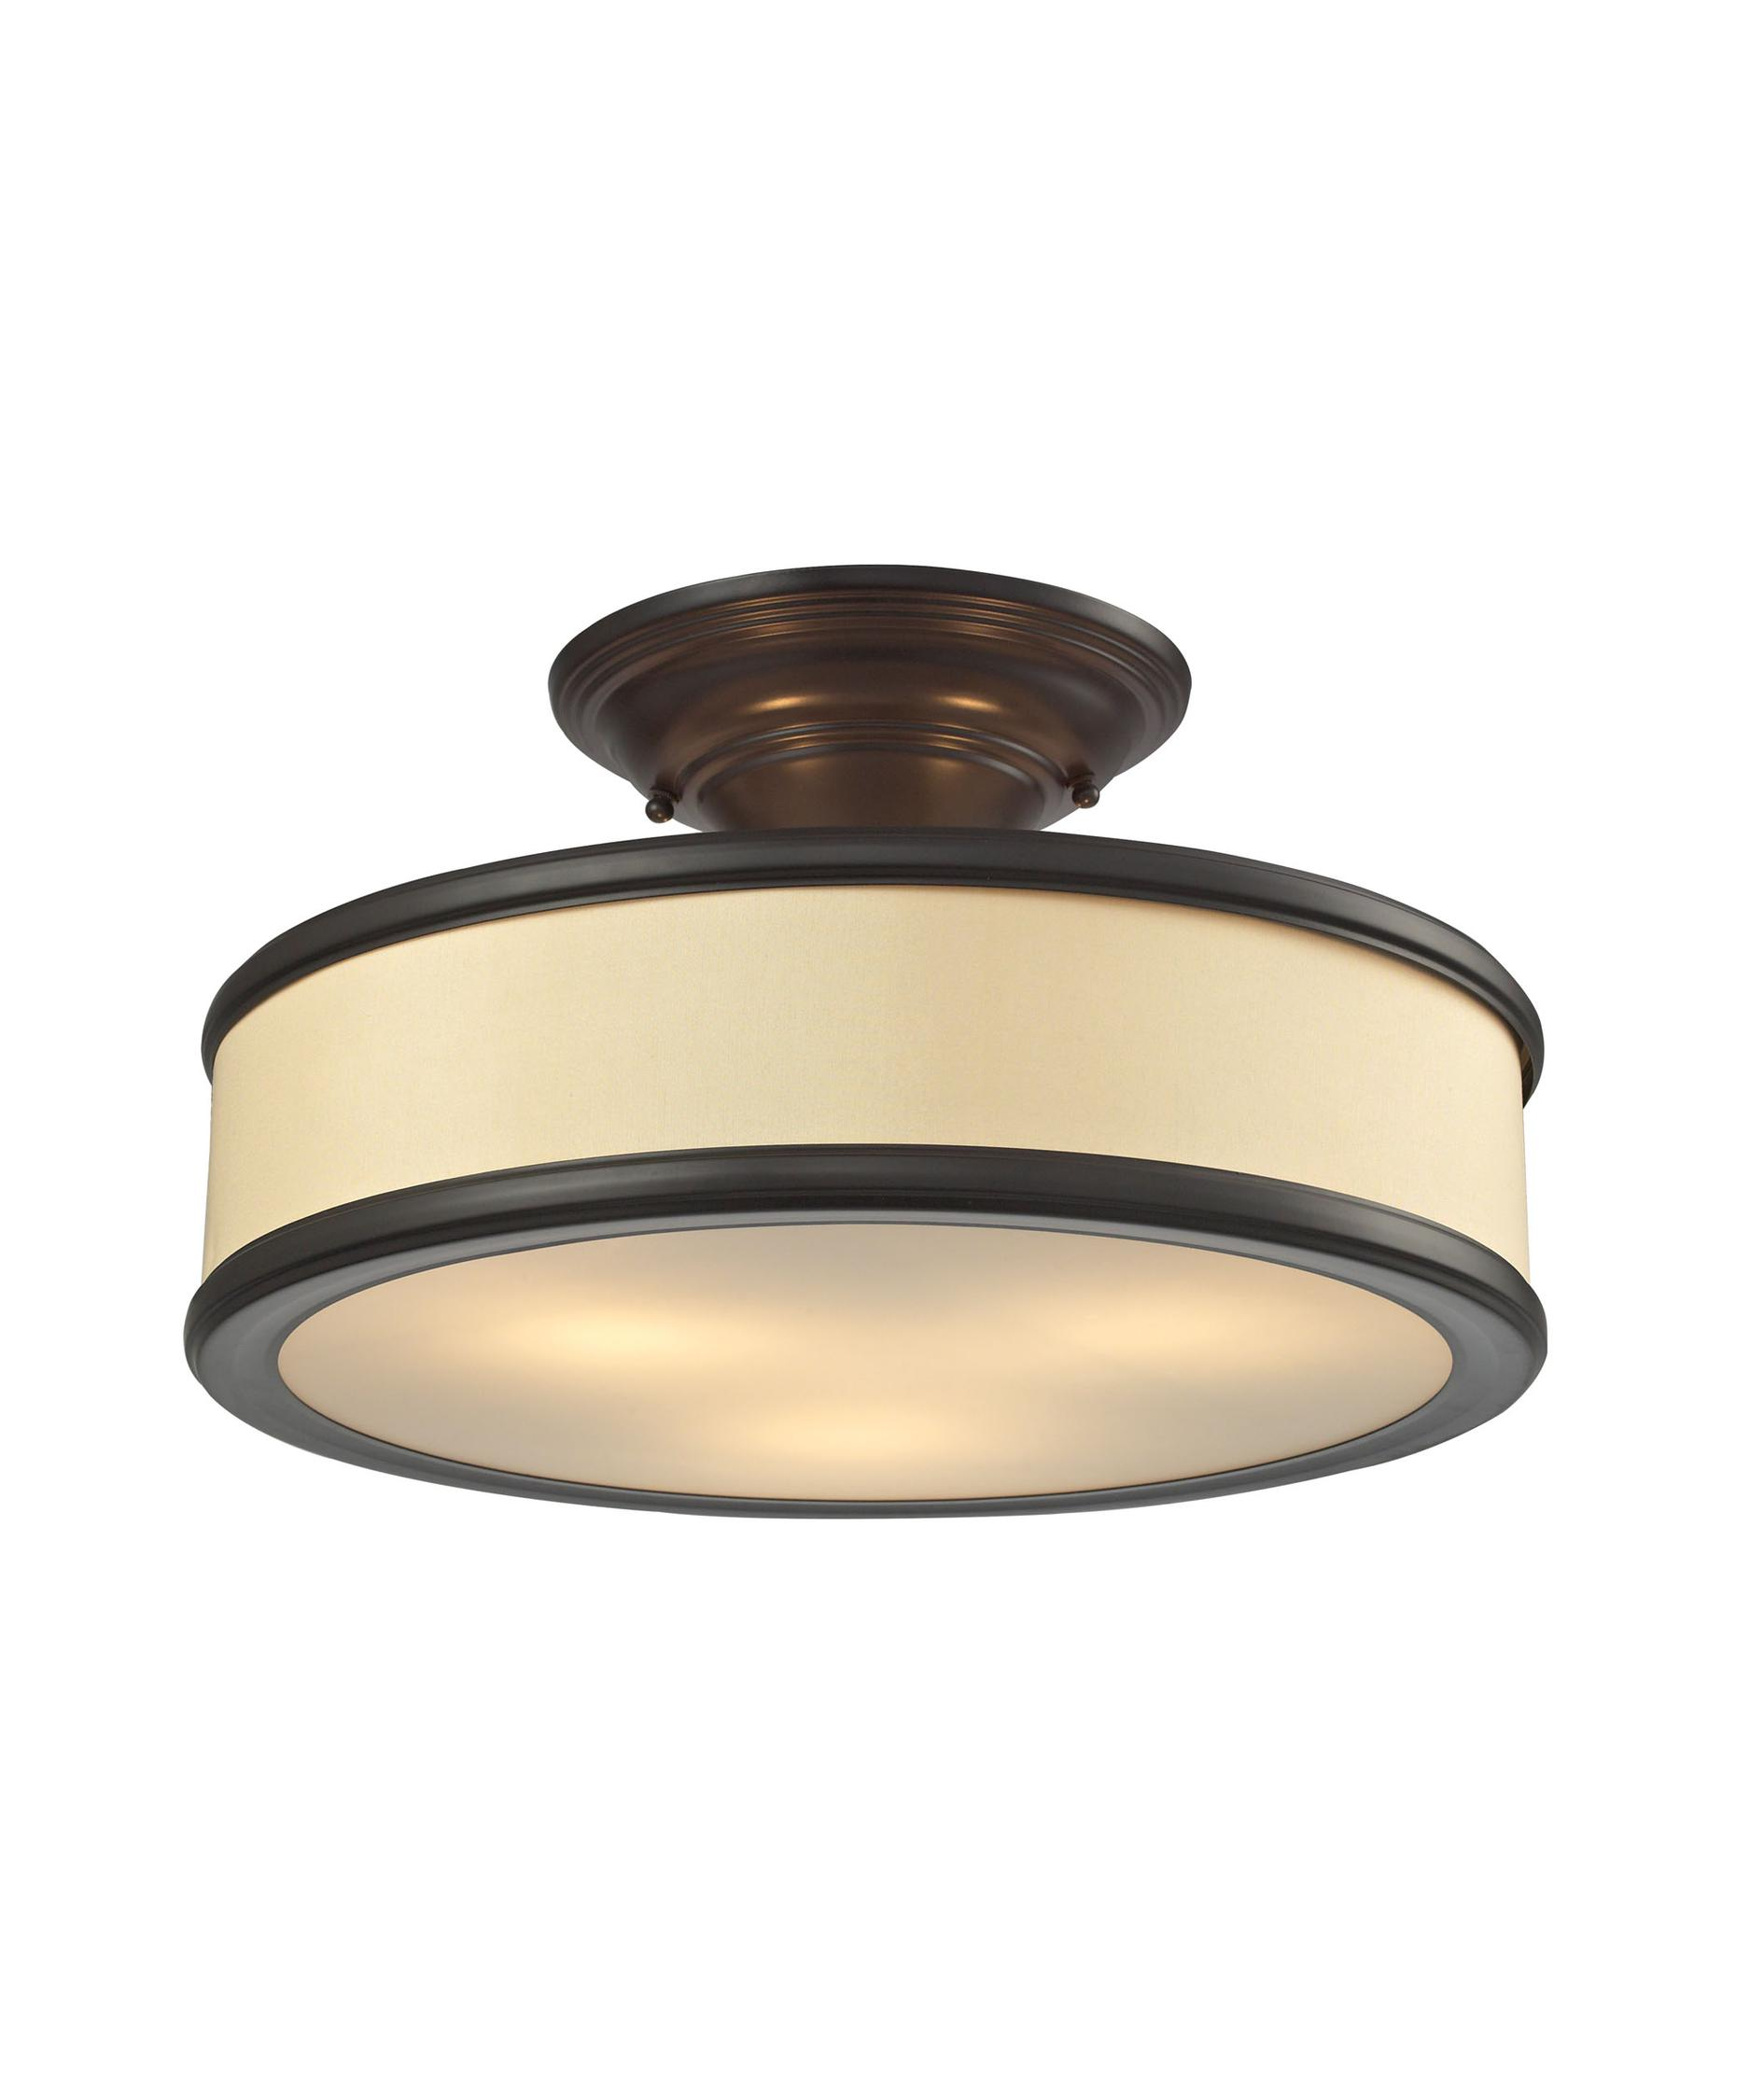 shown in oil rubbed bronze finish and beige fabric shade elk lighting